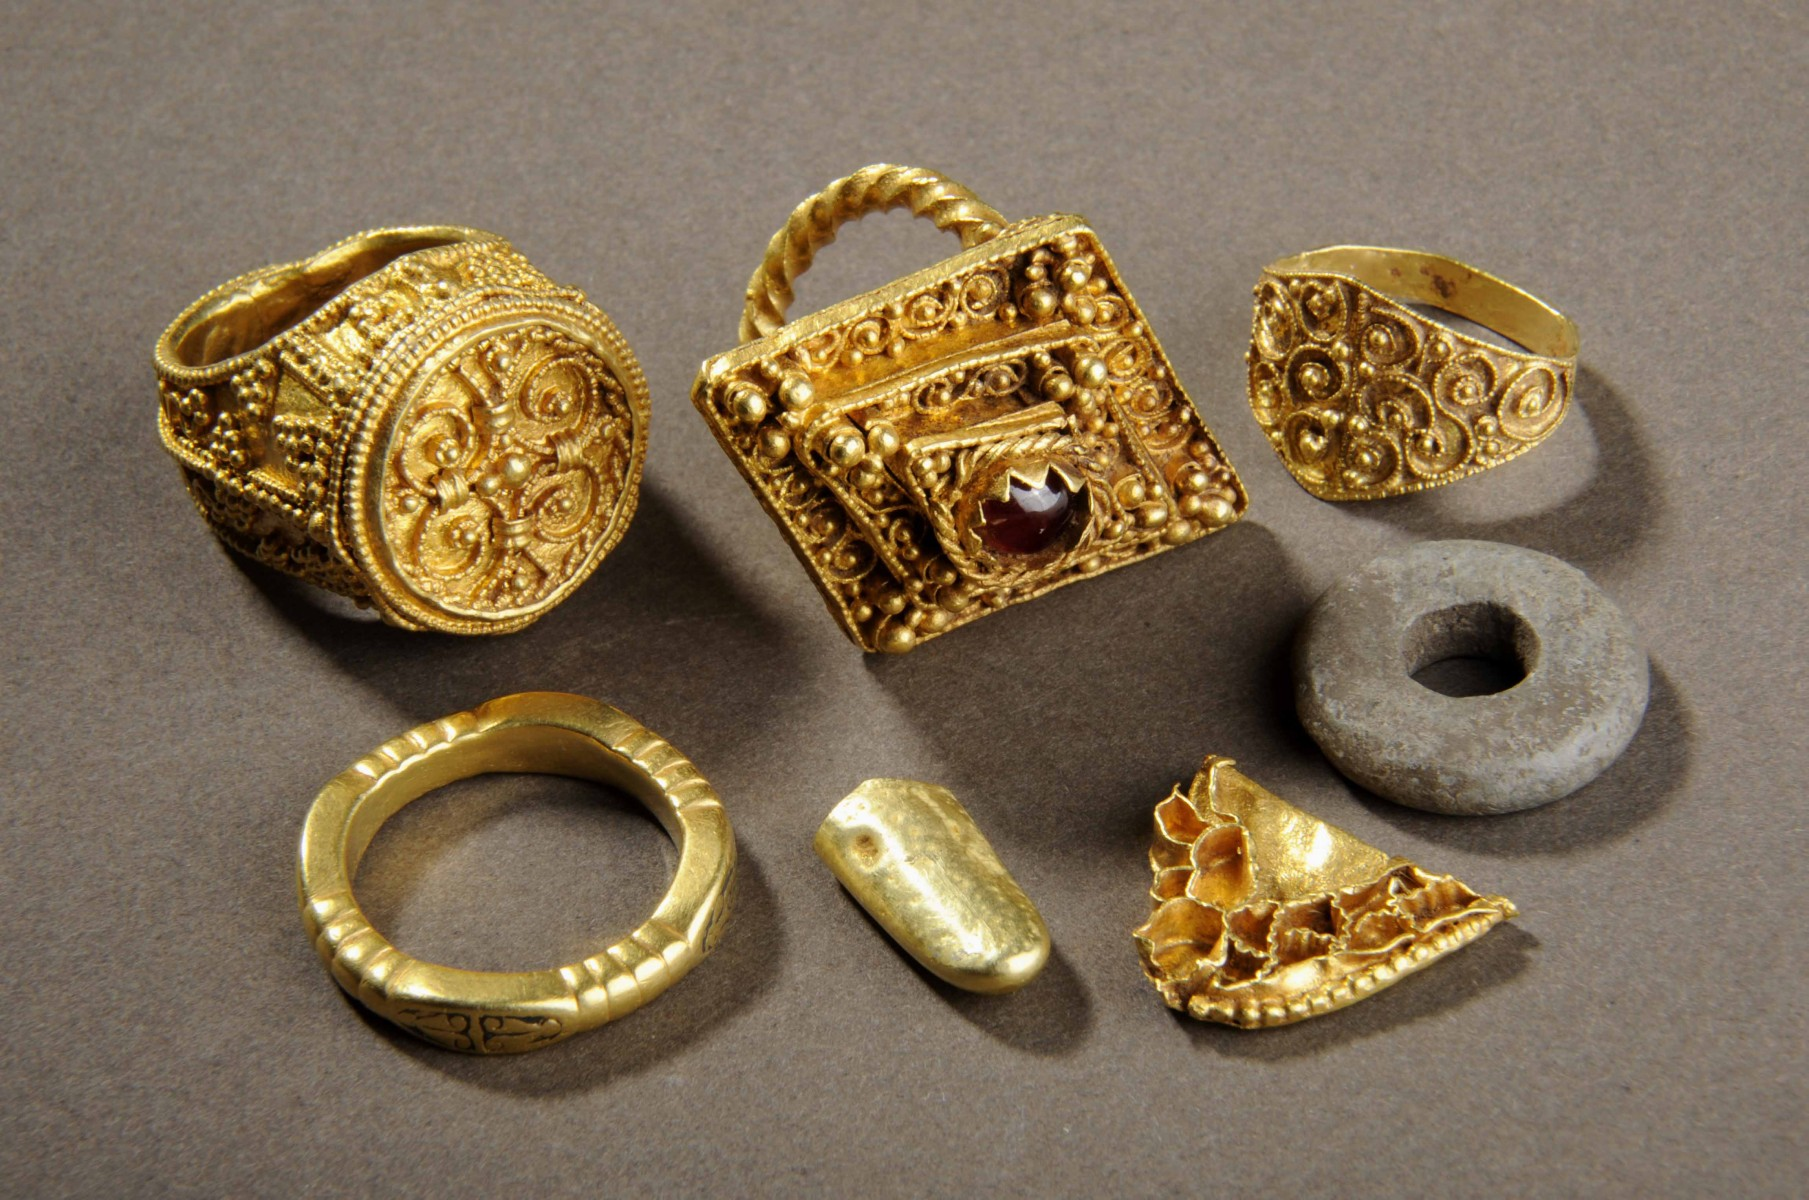 The West Yorkshire Hoard